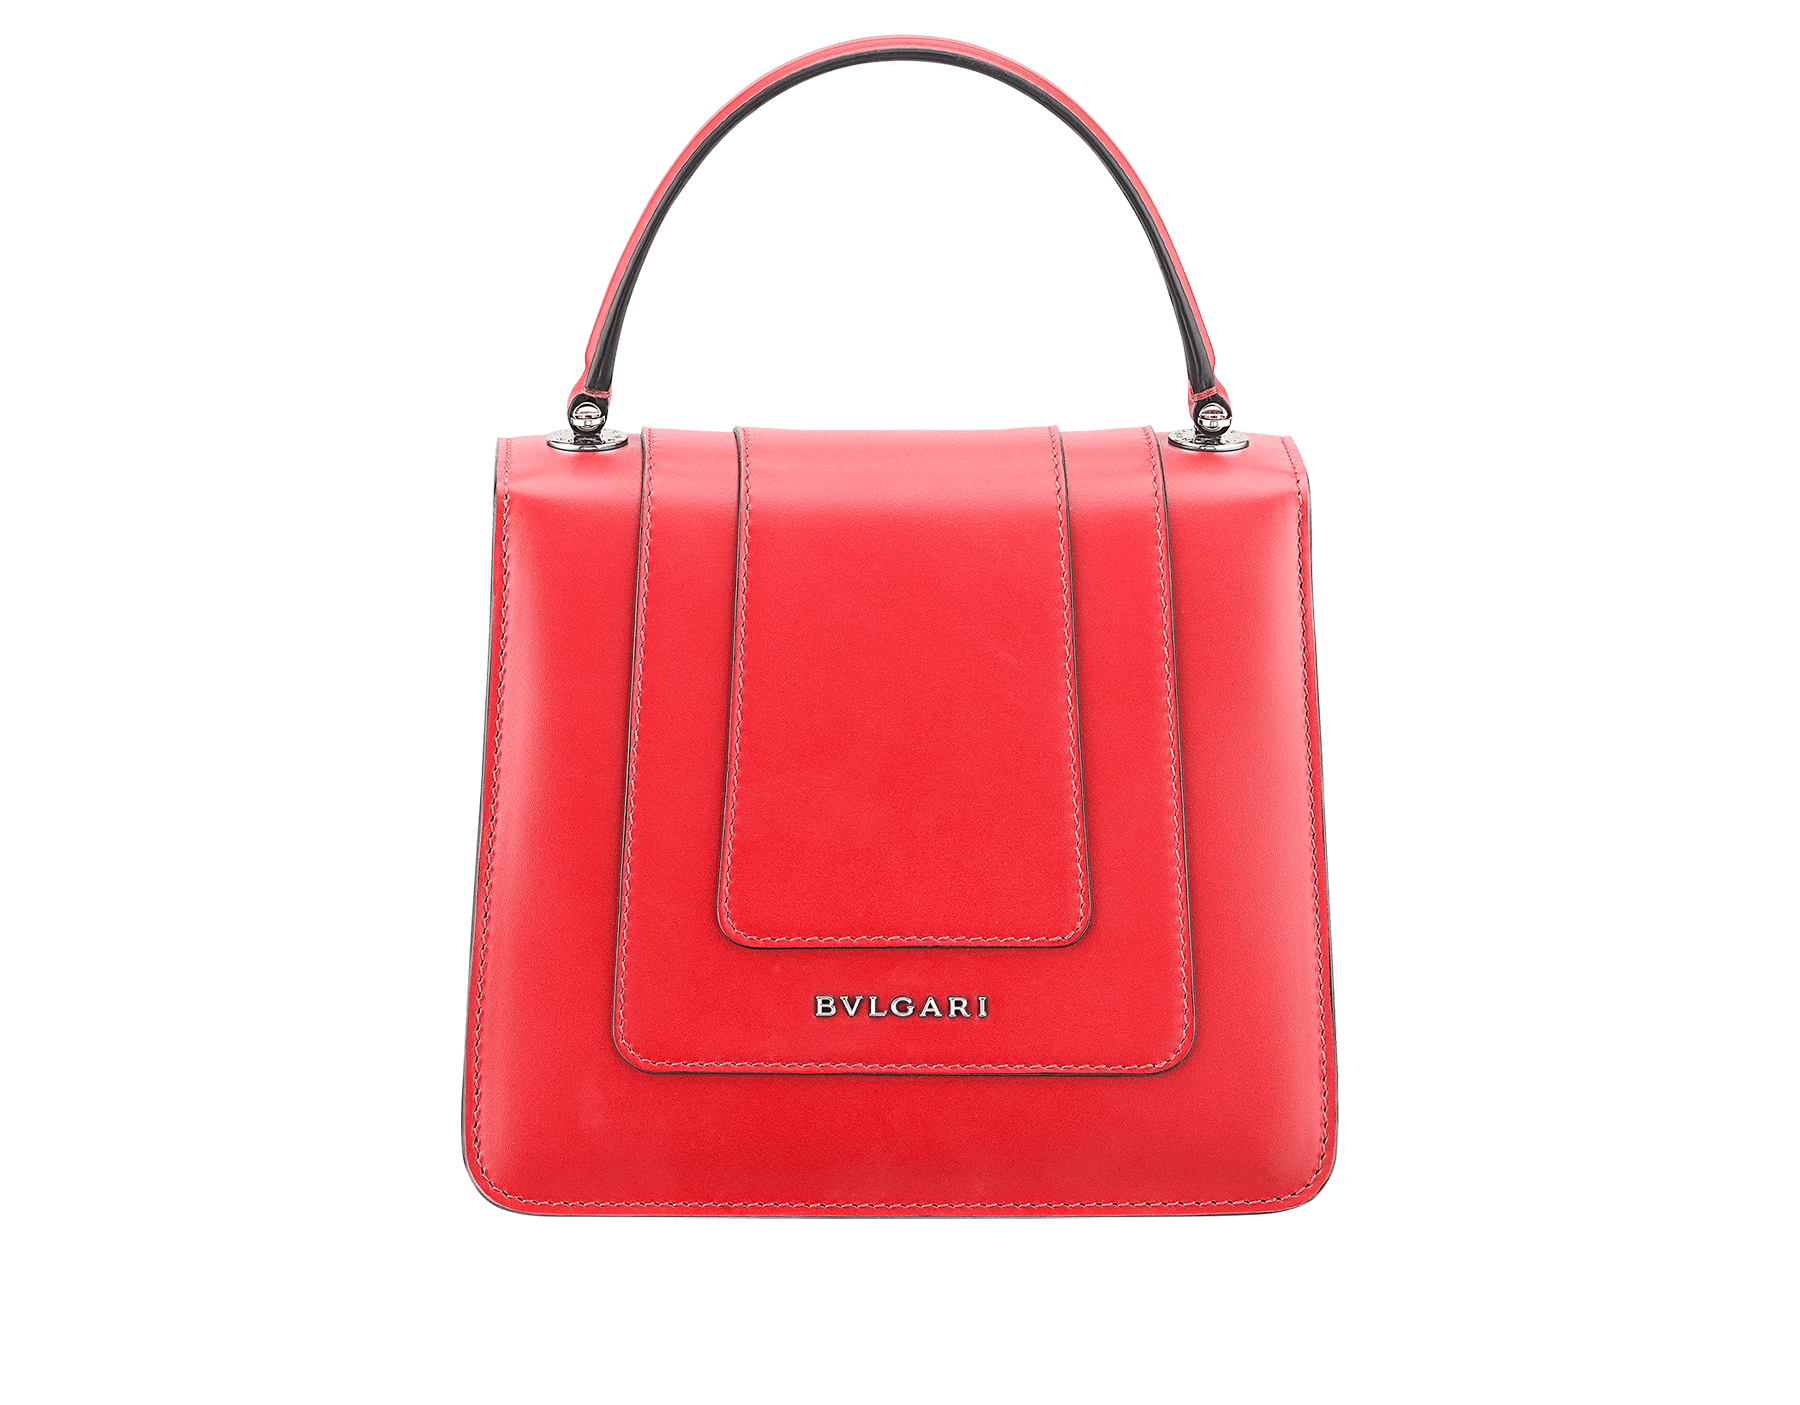 Serpenti Forever crossbody bag in sea star coral smooth calf leather body and milky opal calf leather sides. Snakehead closure in light gold plated brass decorated with milky opal and black enamel, and black onyx eyes. 287961 image 3